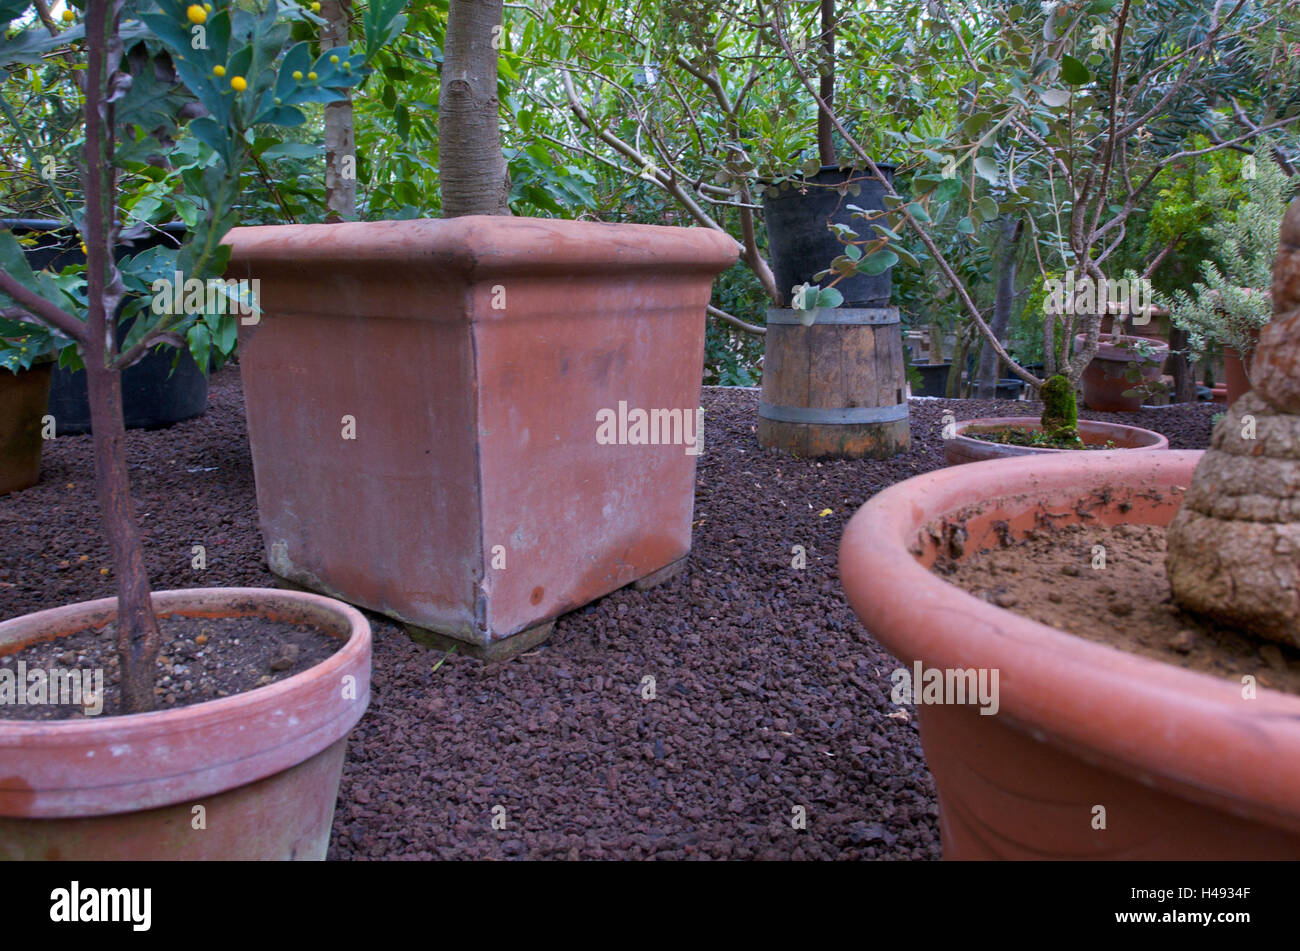 Plants In Tone Pots Stock Photo, Royalty Free Image: 123131247 - Alamy